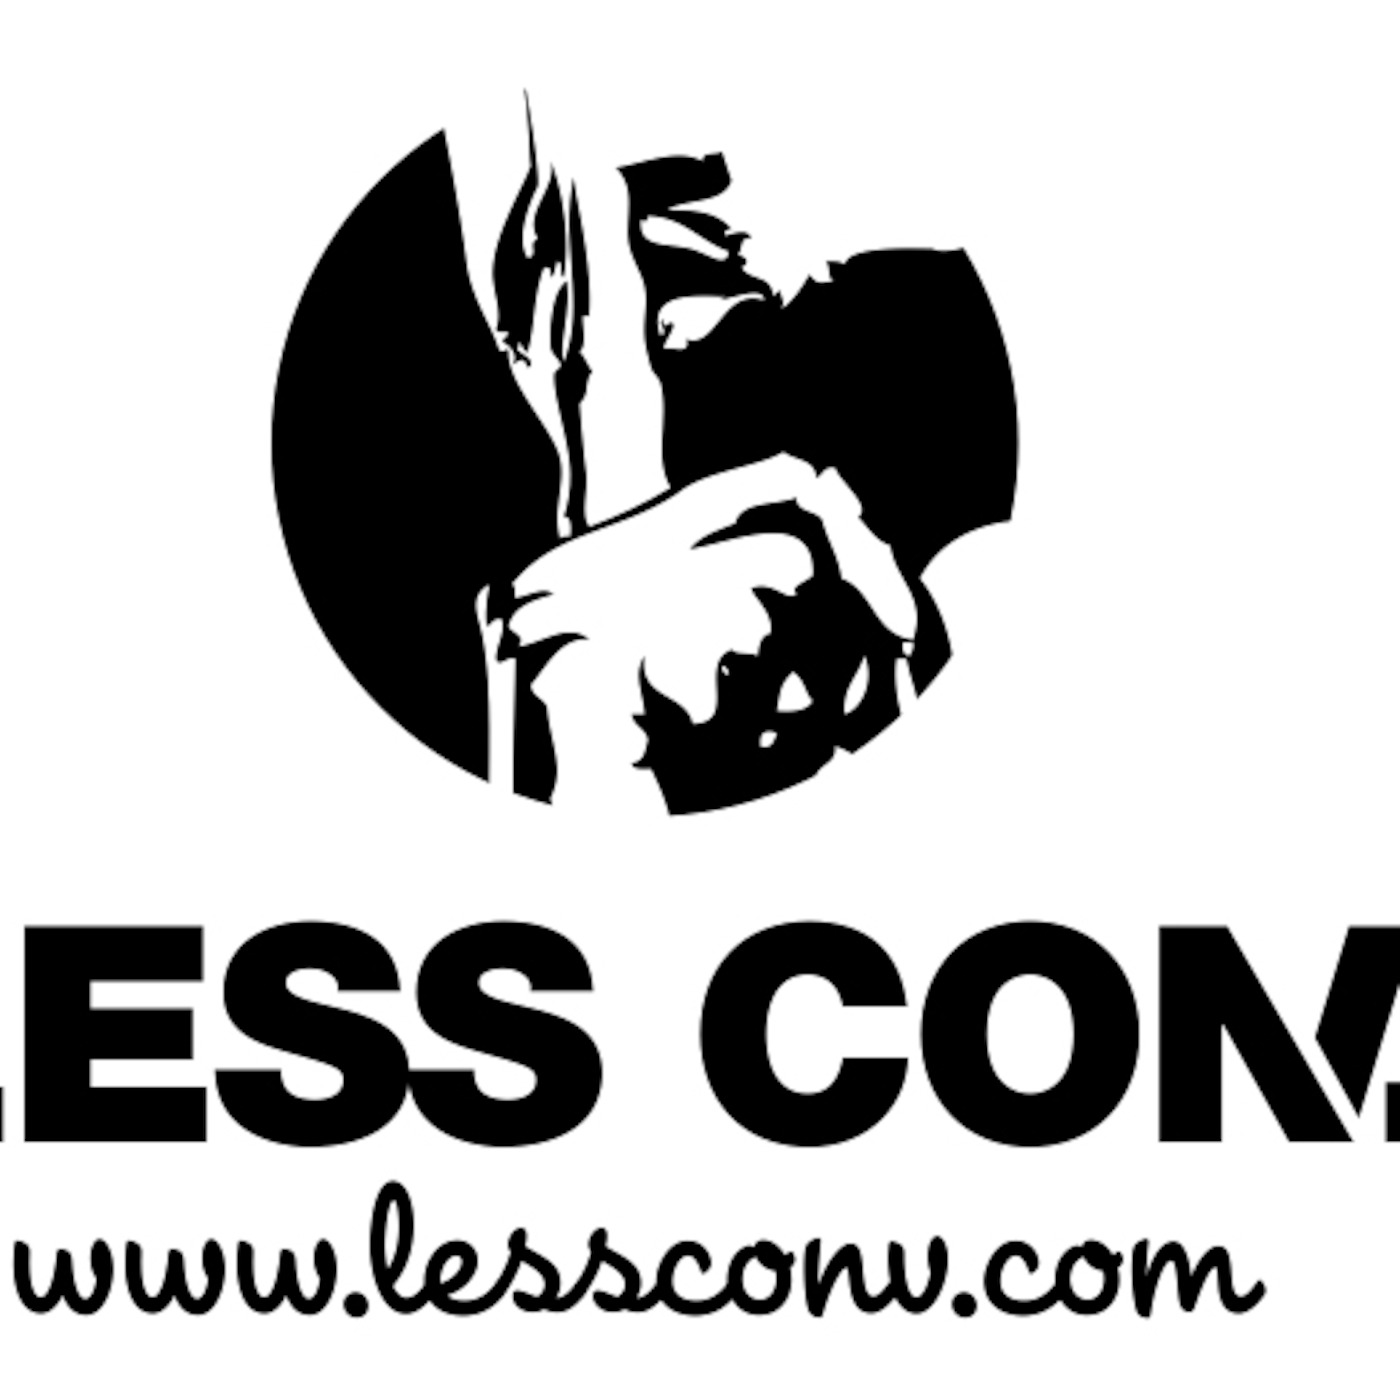 Less Conversation's Podcast